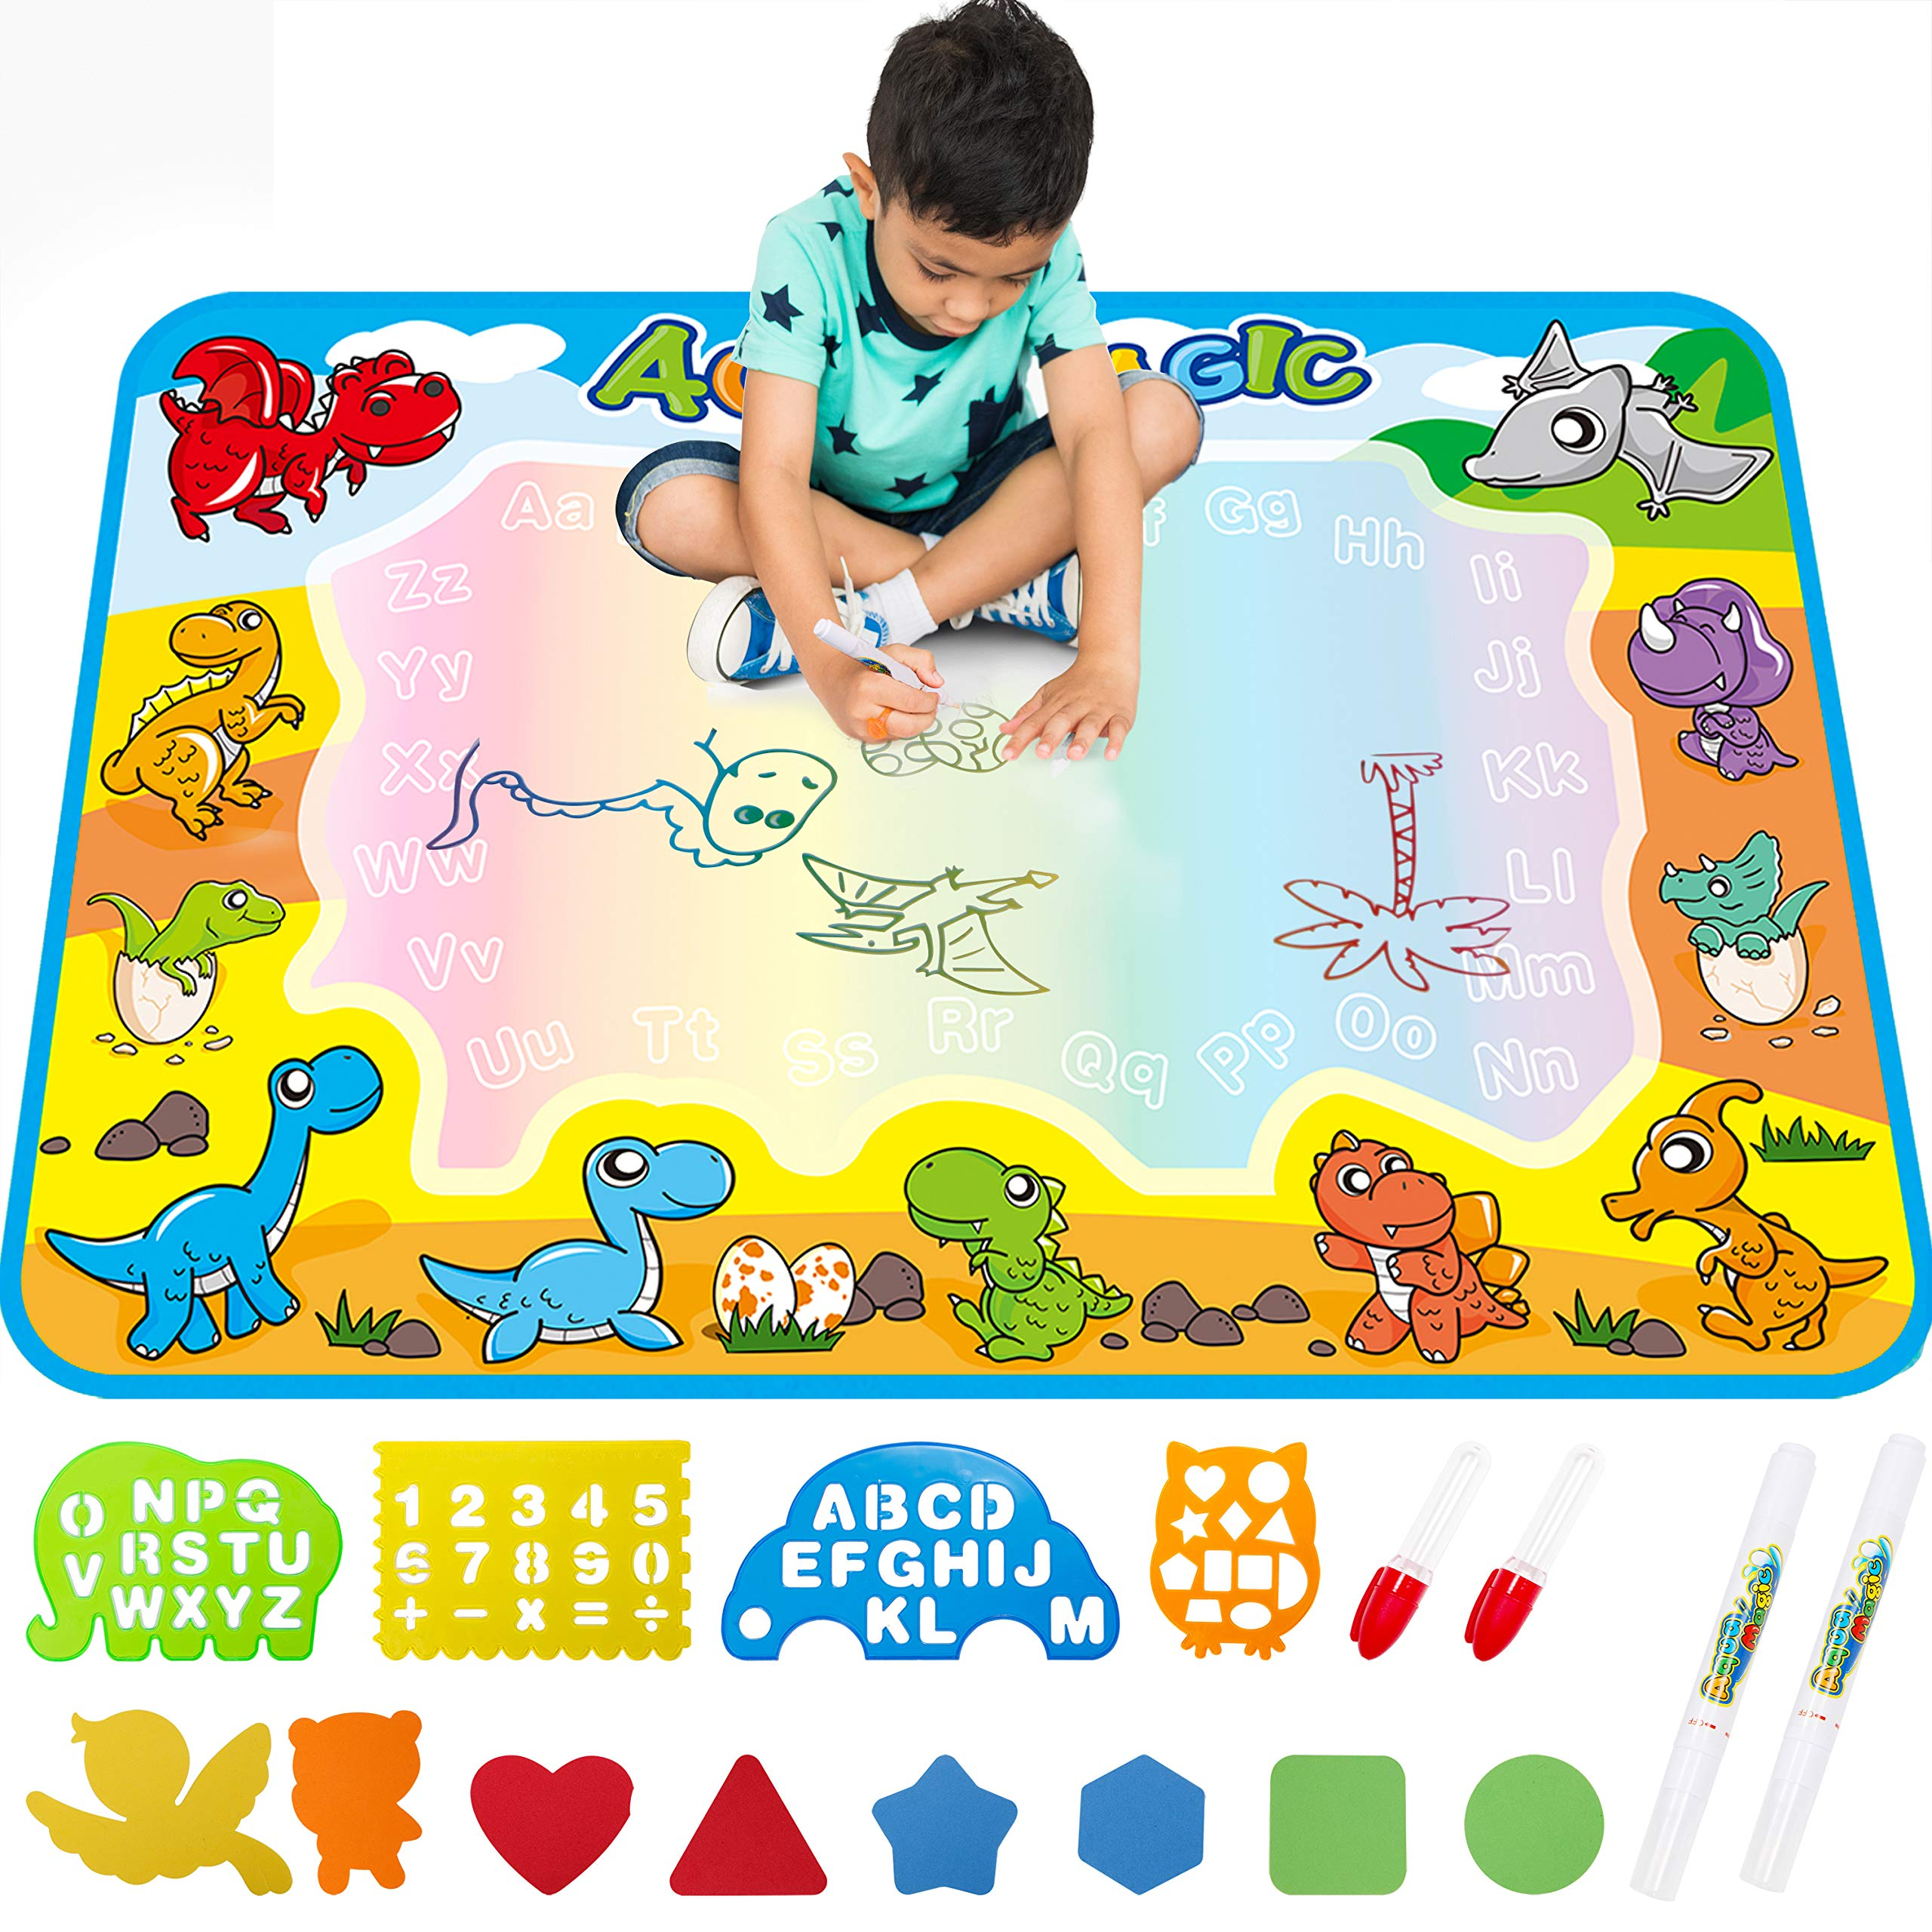 FREE TO FLY Large Aquadoodle Drawing Mat for Kids Water Painting Writing Doodle Board Toy Color Aqua Magic Mat Bring Magic Pens Educational Travel Toys Gift for Boys Girls Toddlers Age 2 3 4 5 6 by FREE TO FLY